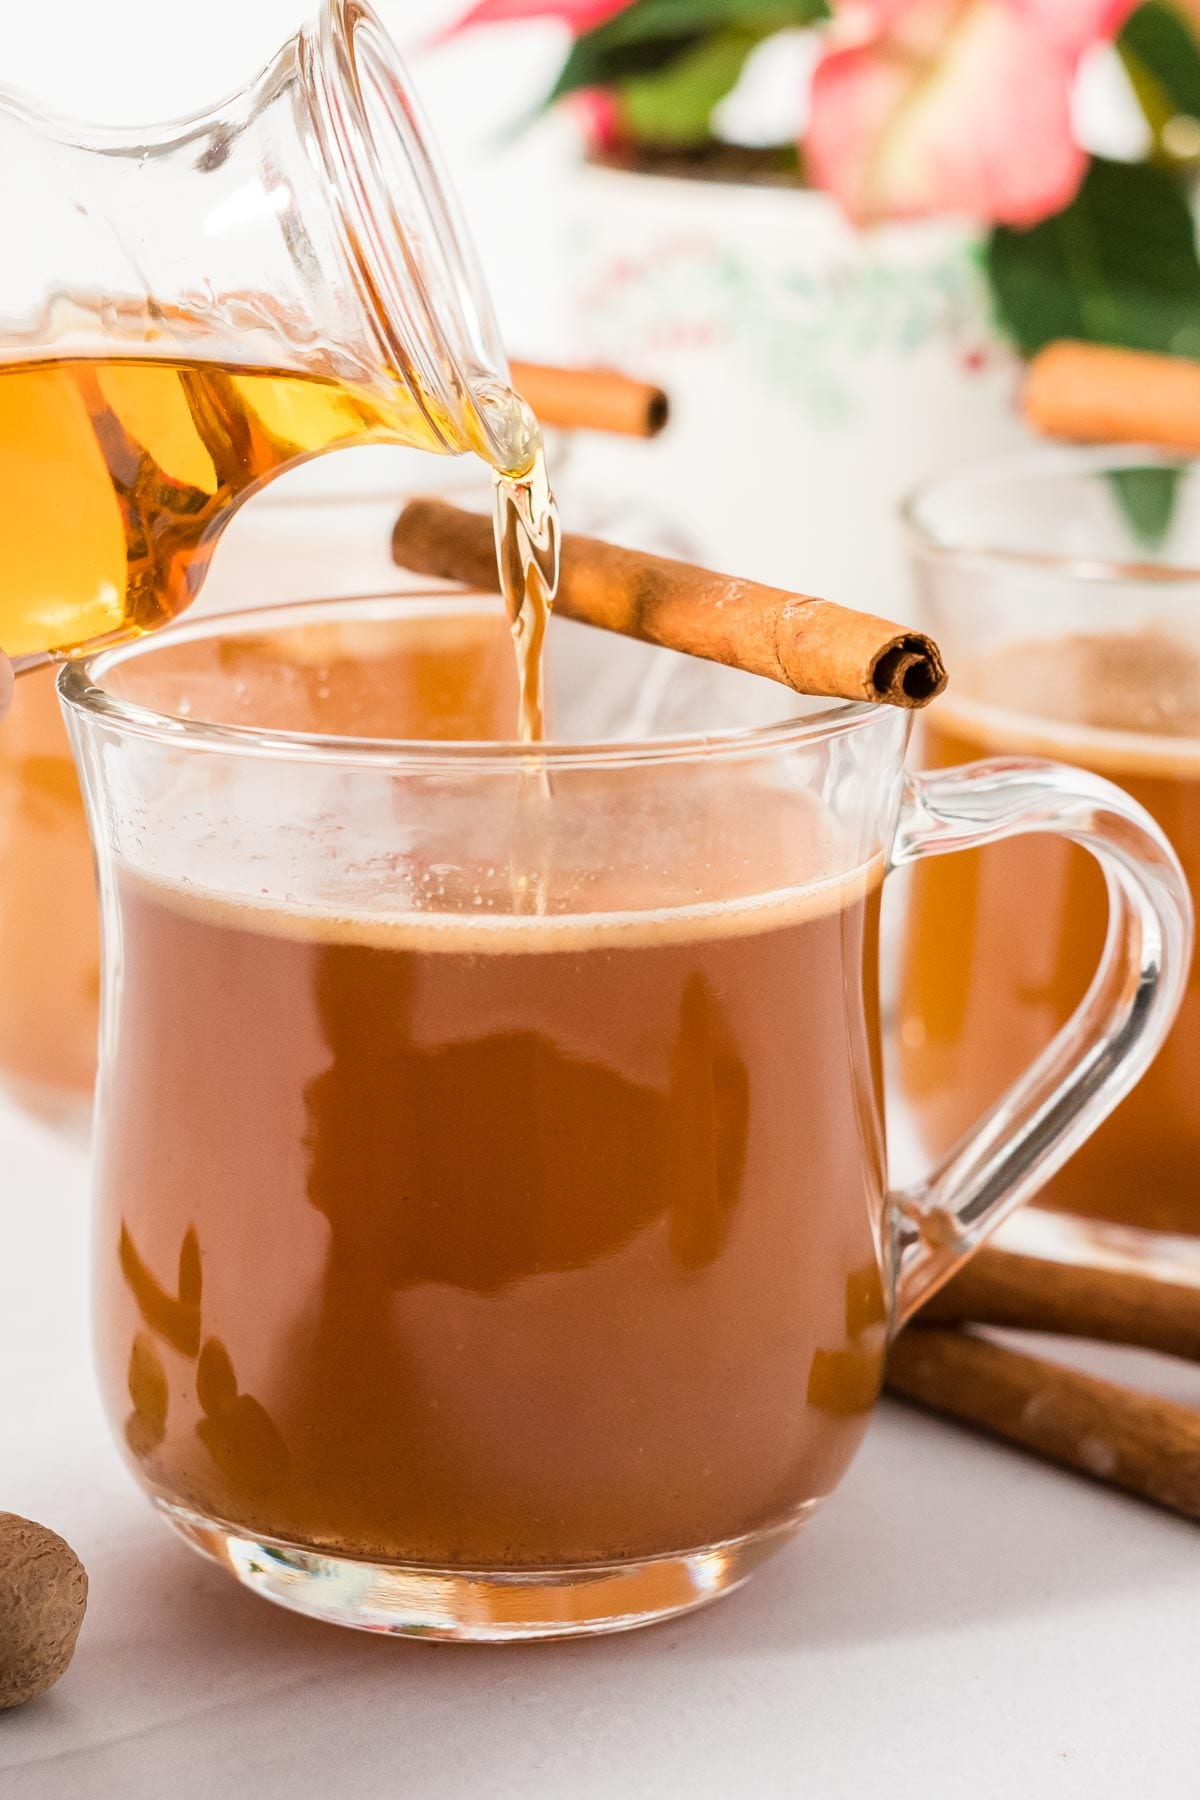 Rum being poured into a mug of hot buttered rum mix.